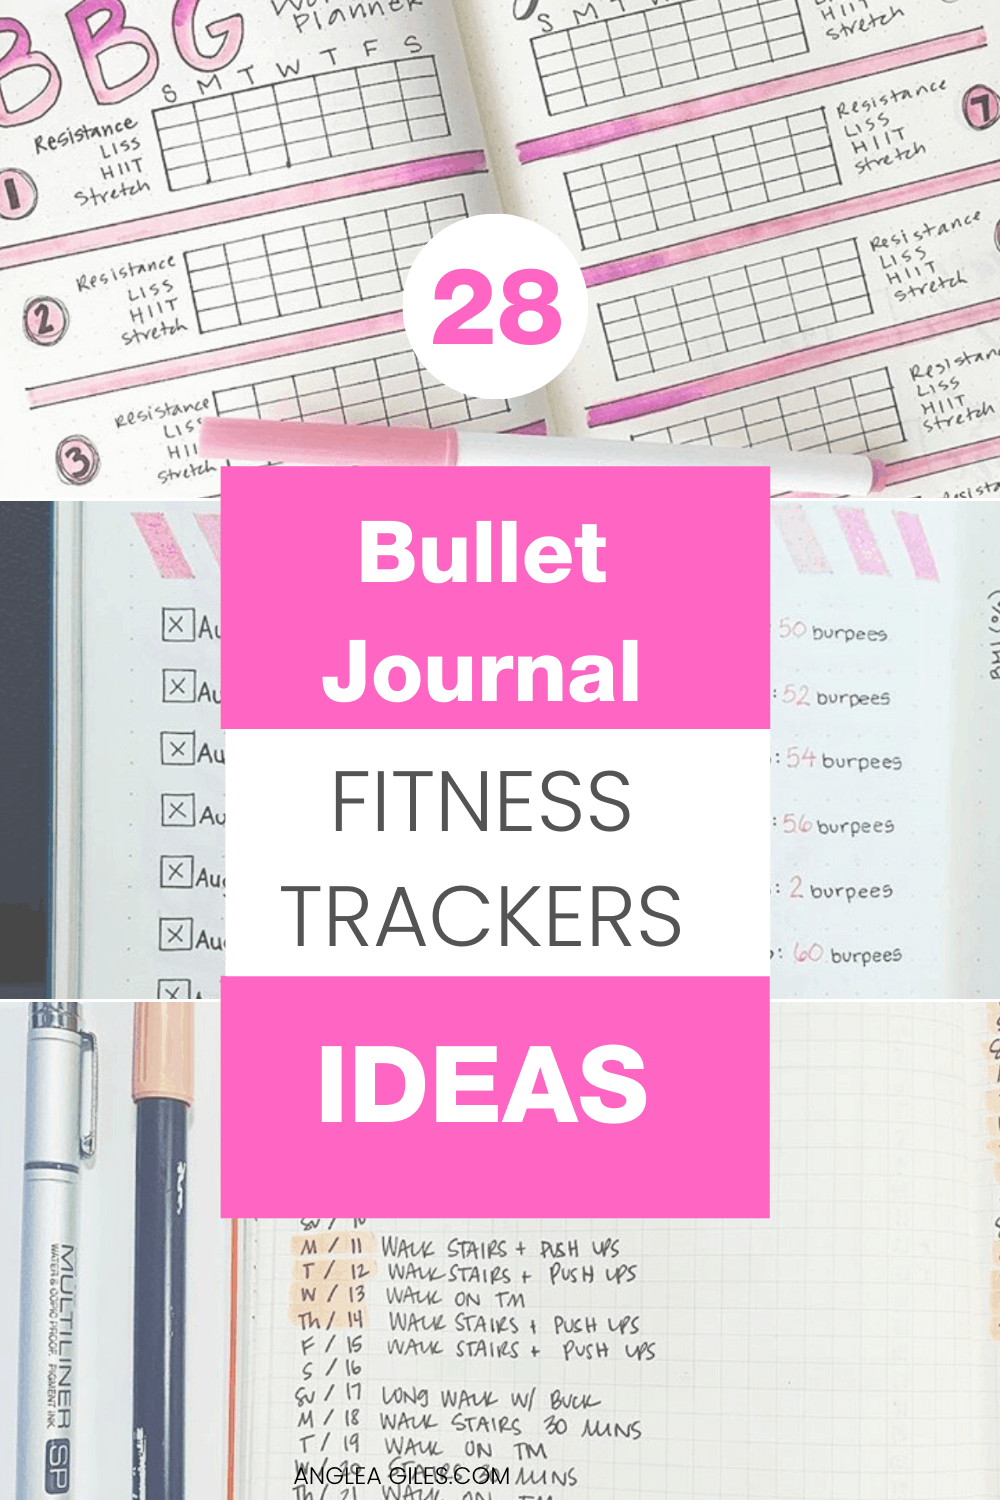 You will love these bullet journal fitness trackers.  They will help you track your daily, monthly and yearly patterns in your very own bujo fitness layout.  This collection showcases different health and fitness pages, ideas and spreads for your creative inspiration!  It is time to rock your fitness goals!